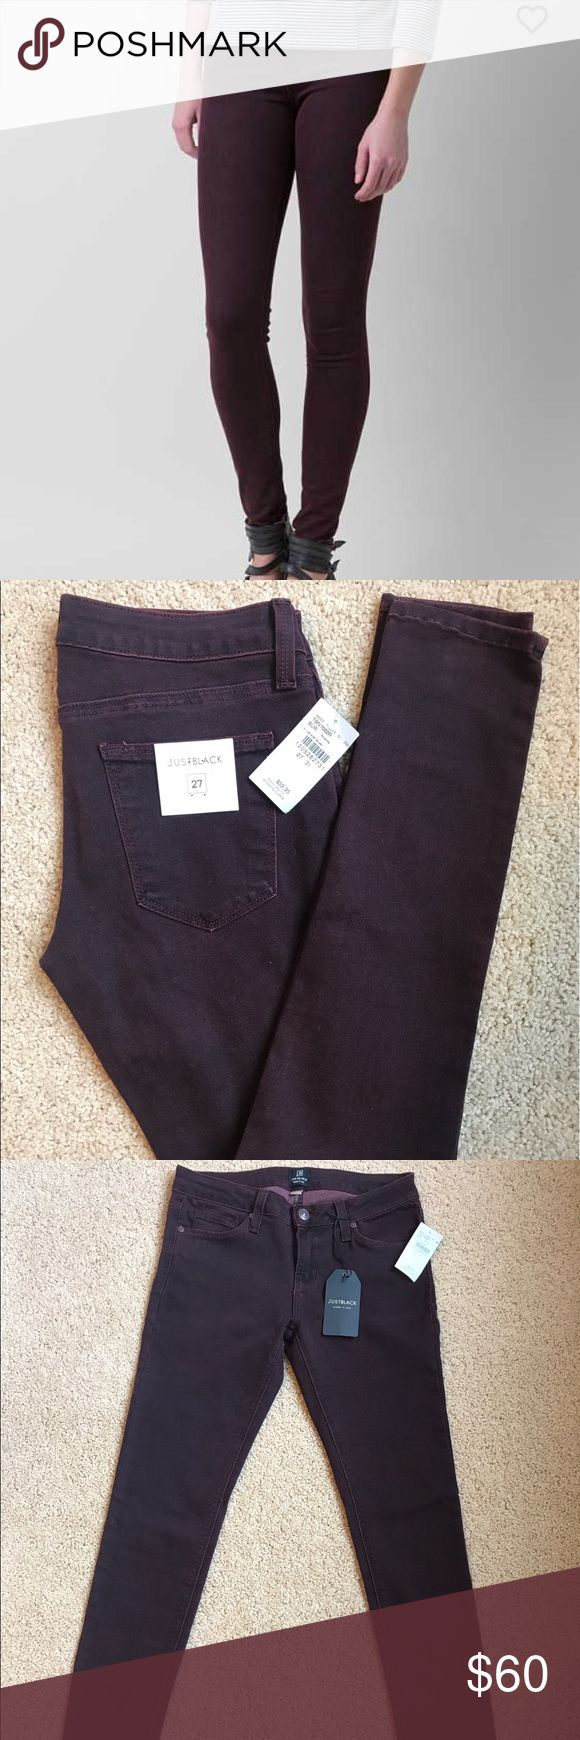 "Just Black Burgundy Skinny Stretch Jeans These low rise stretchy skinny jeans have a 31"" inseam. The burgundy and black threading makes for a very unique and beautiful color that could go with pretty much anything! Originally purchased from Buckle. Just Black Jeans Skinny"